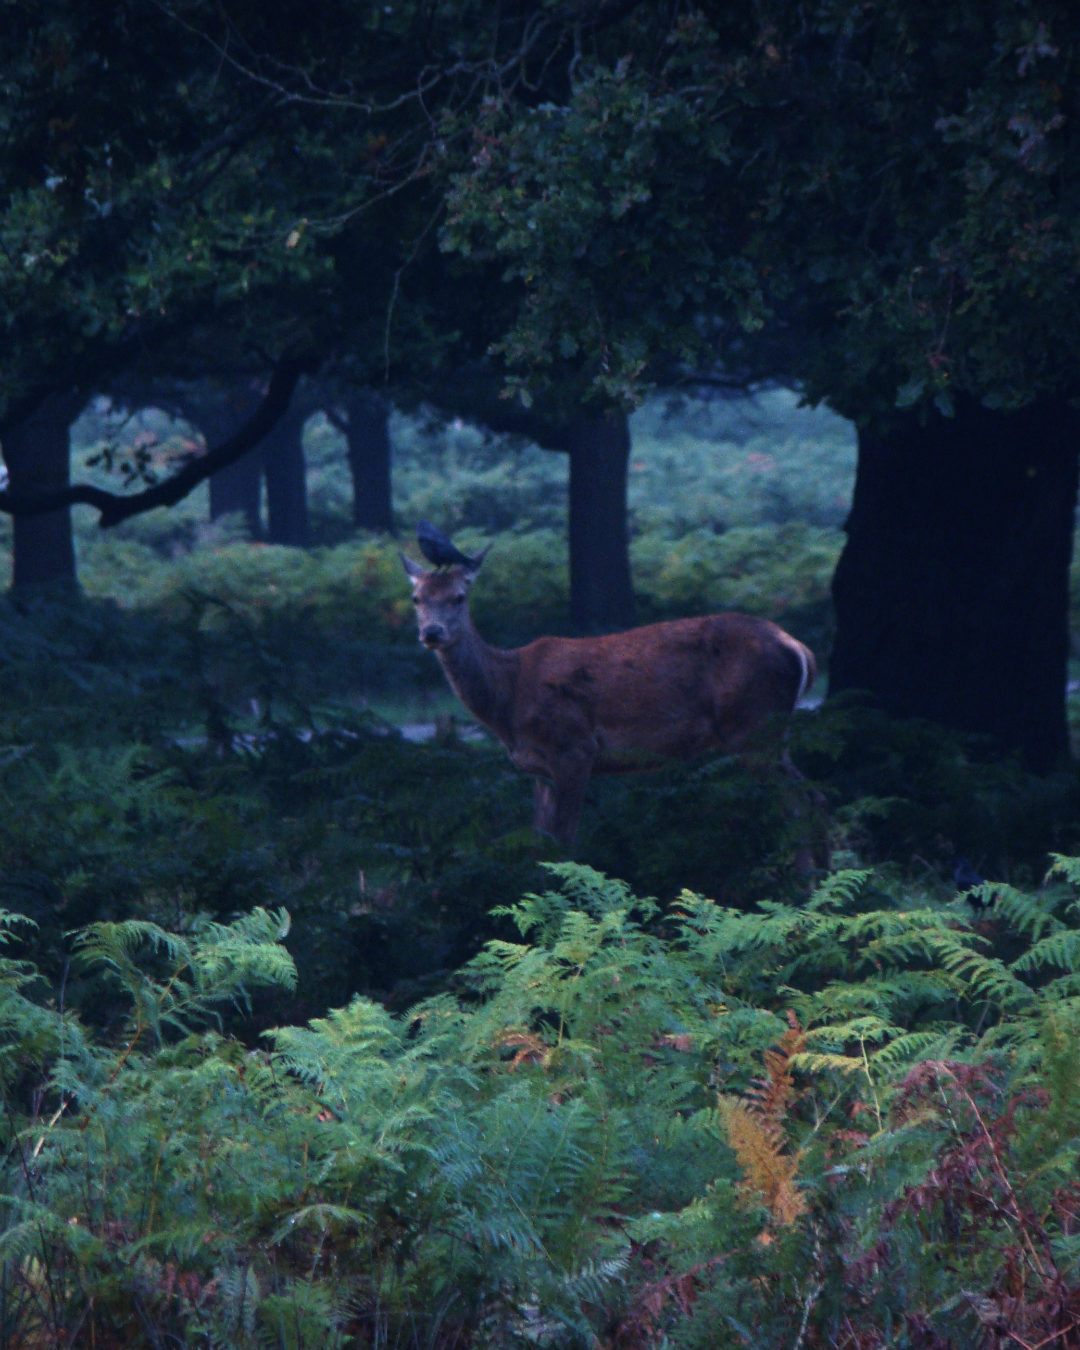 A red deer hind in Richmond Park, London, 3 October 2015